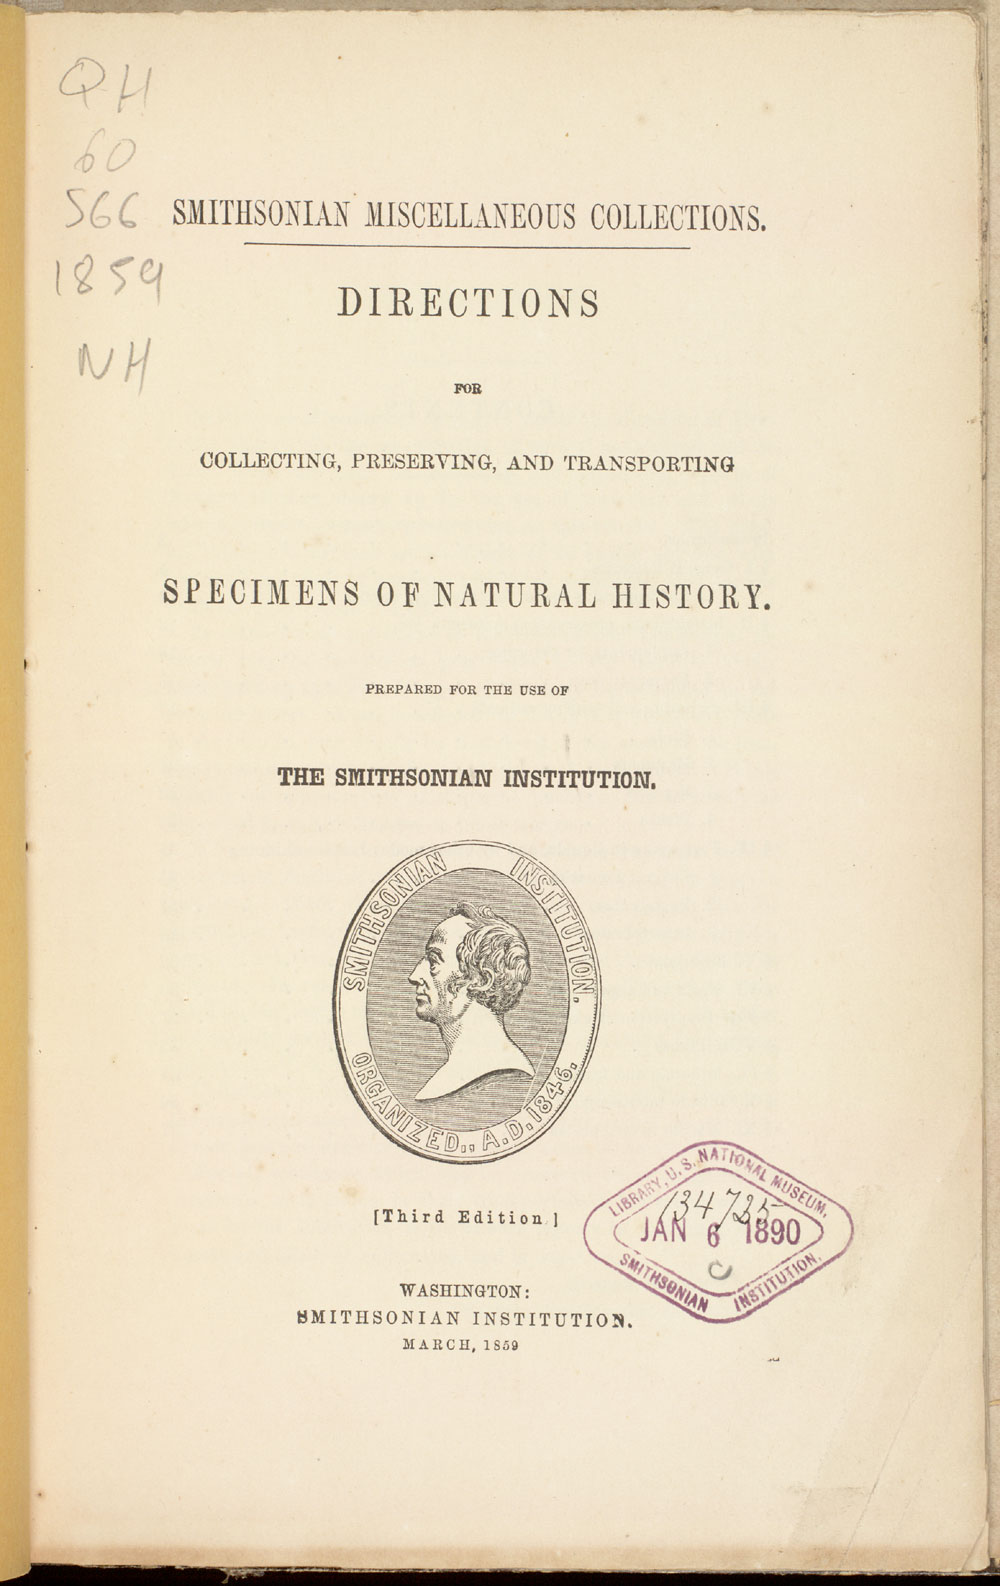 Title page, showing Smithsonian seal with portrait of James Smithson,  Image number:SIL21-11-001